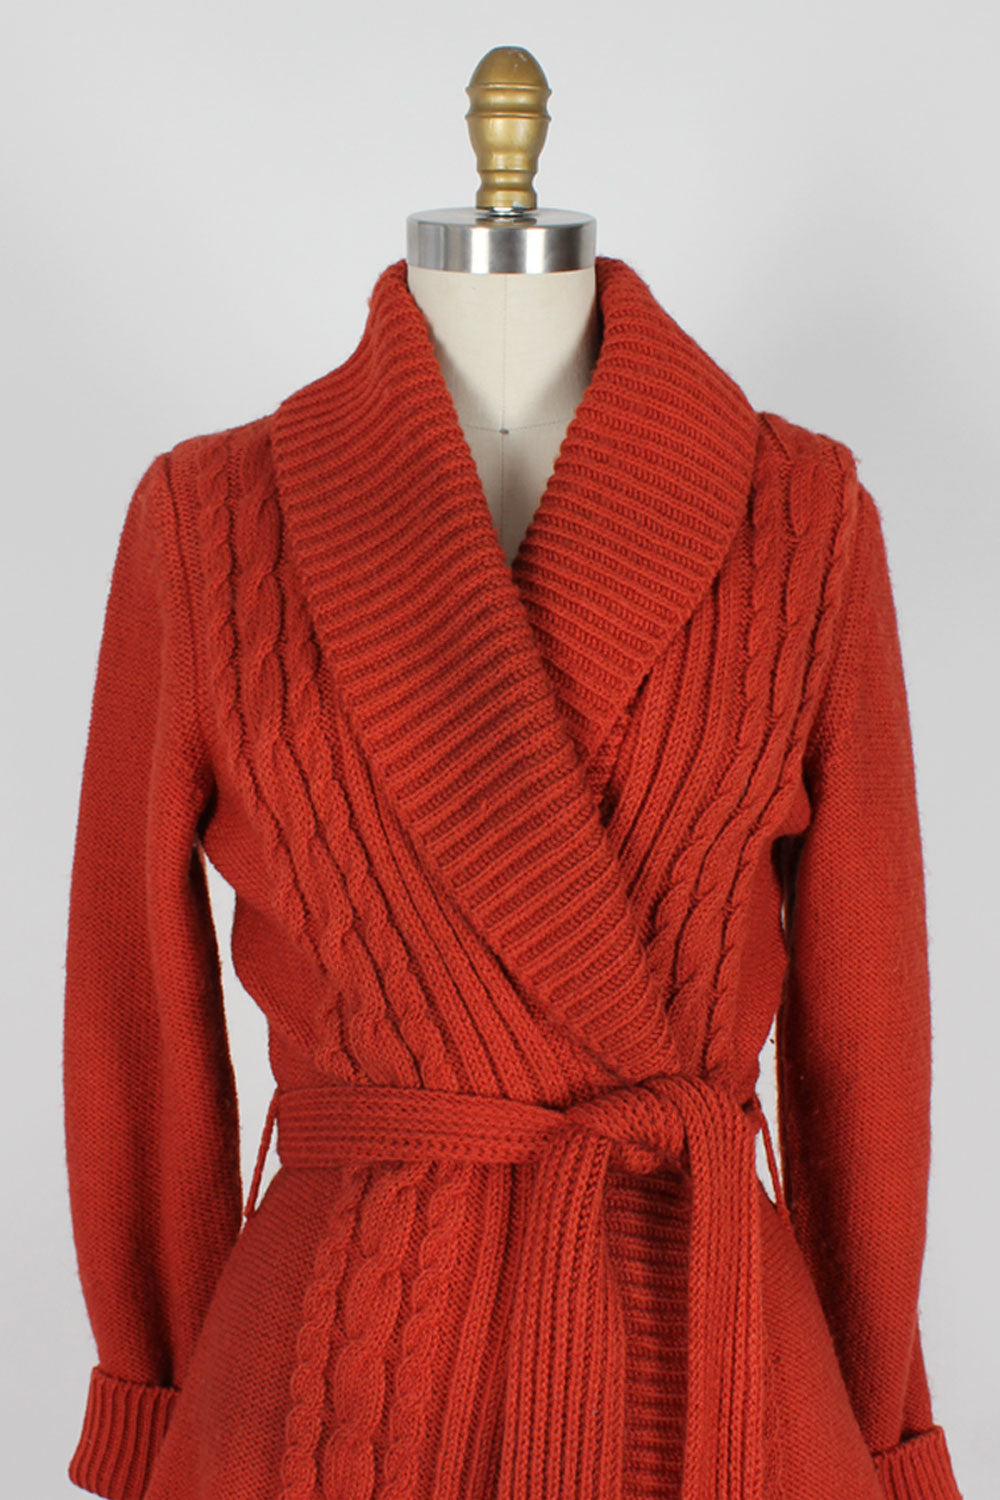 Russet Belted Italian Cardigan XS-M